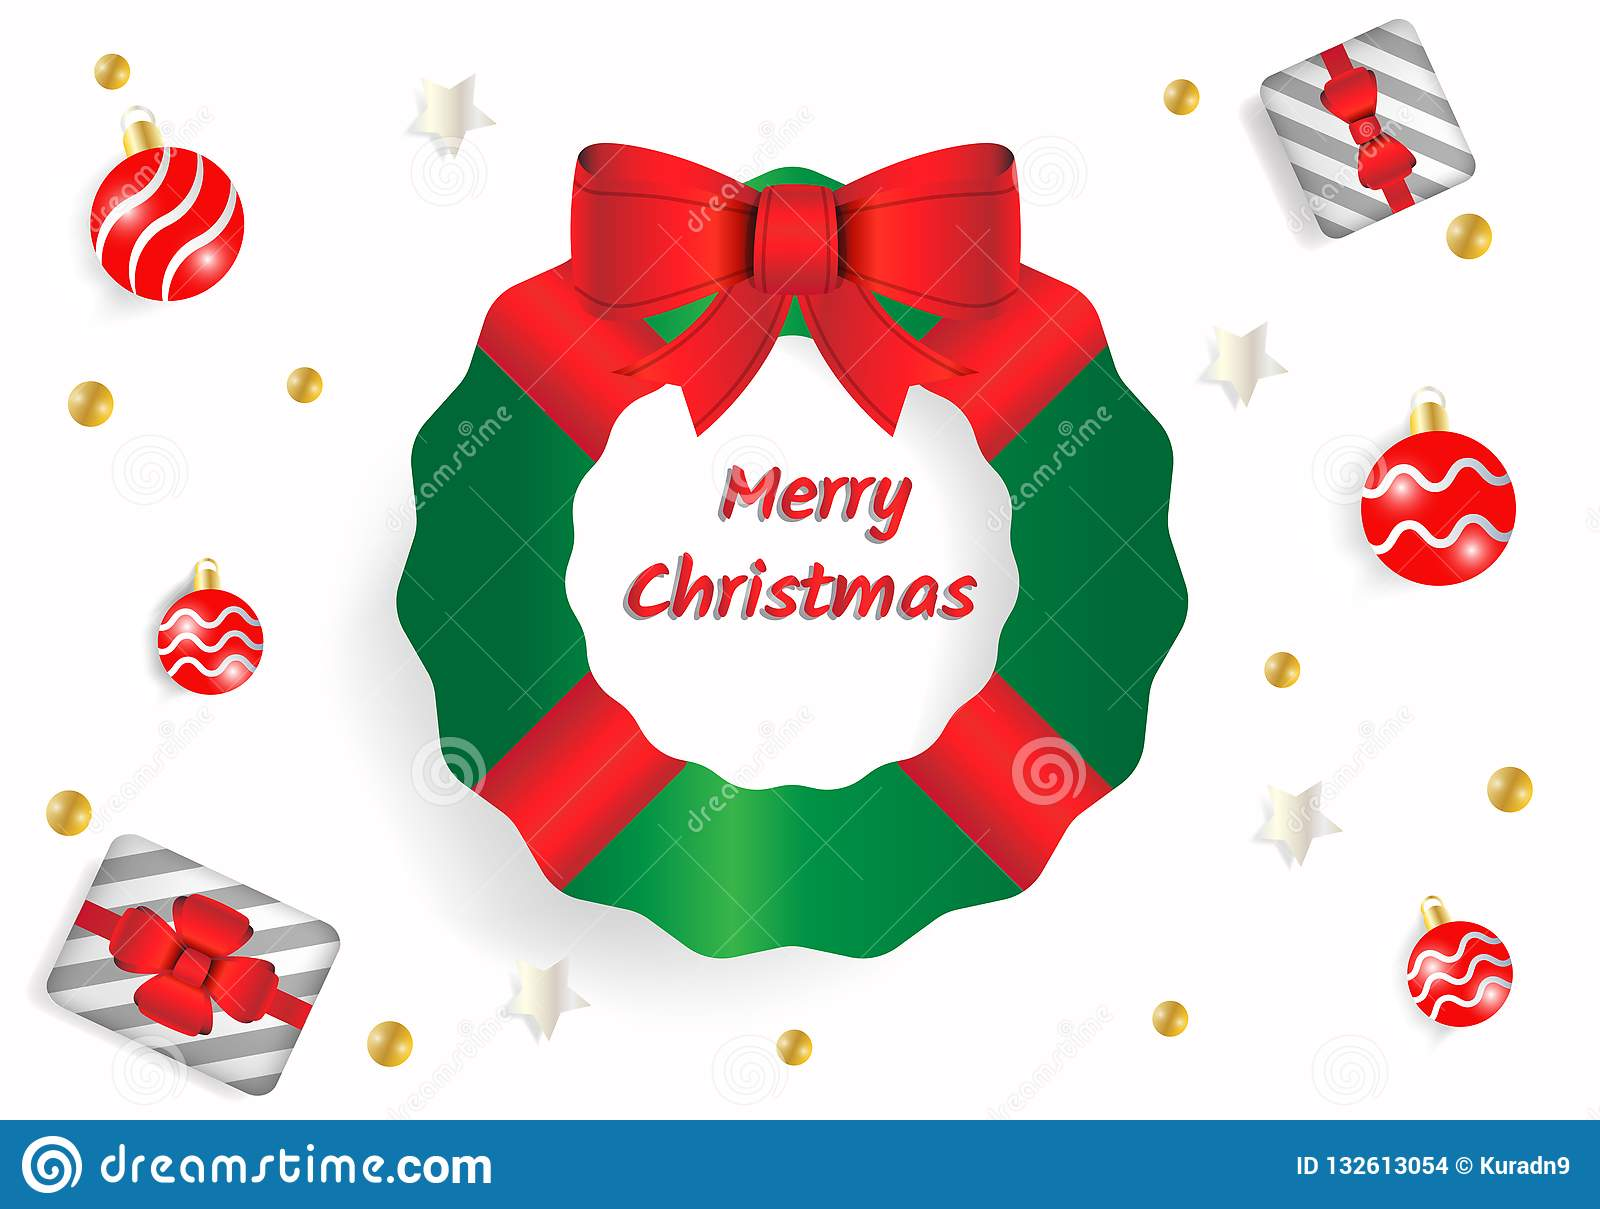 Merry Christmas greeting text in white background. Using green fir tree with red ribbon bow, gift box, silver star and red ball